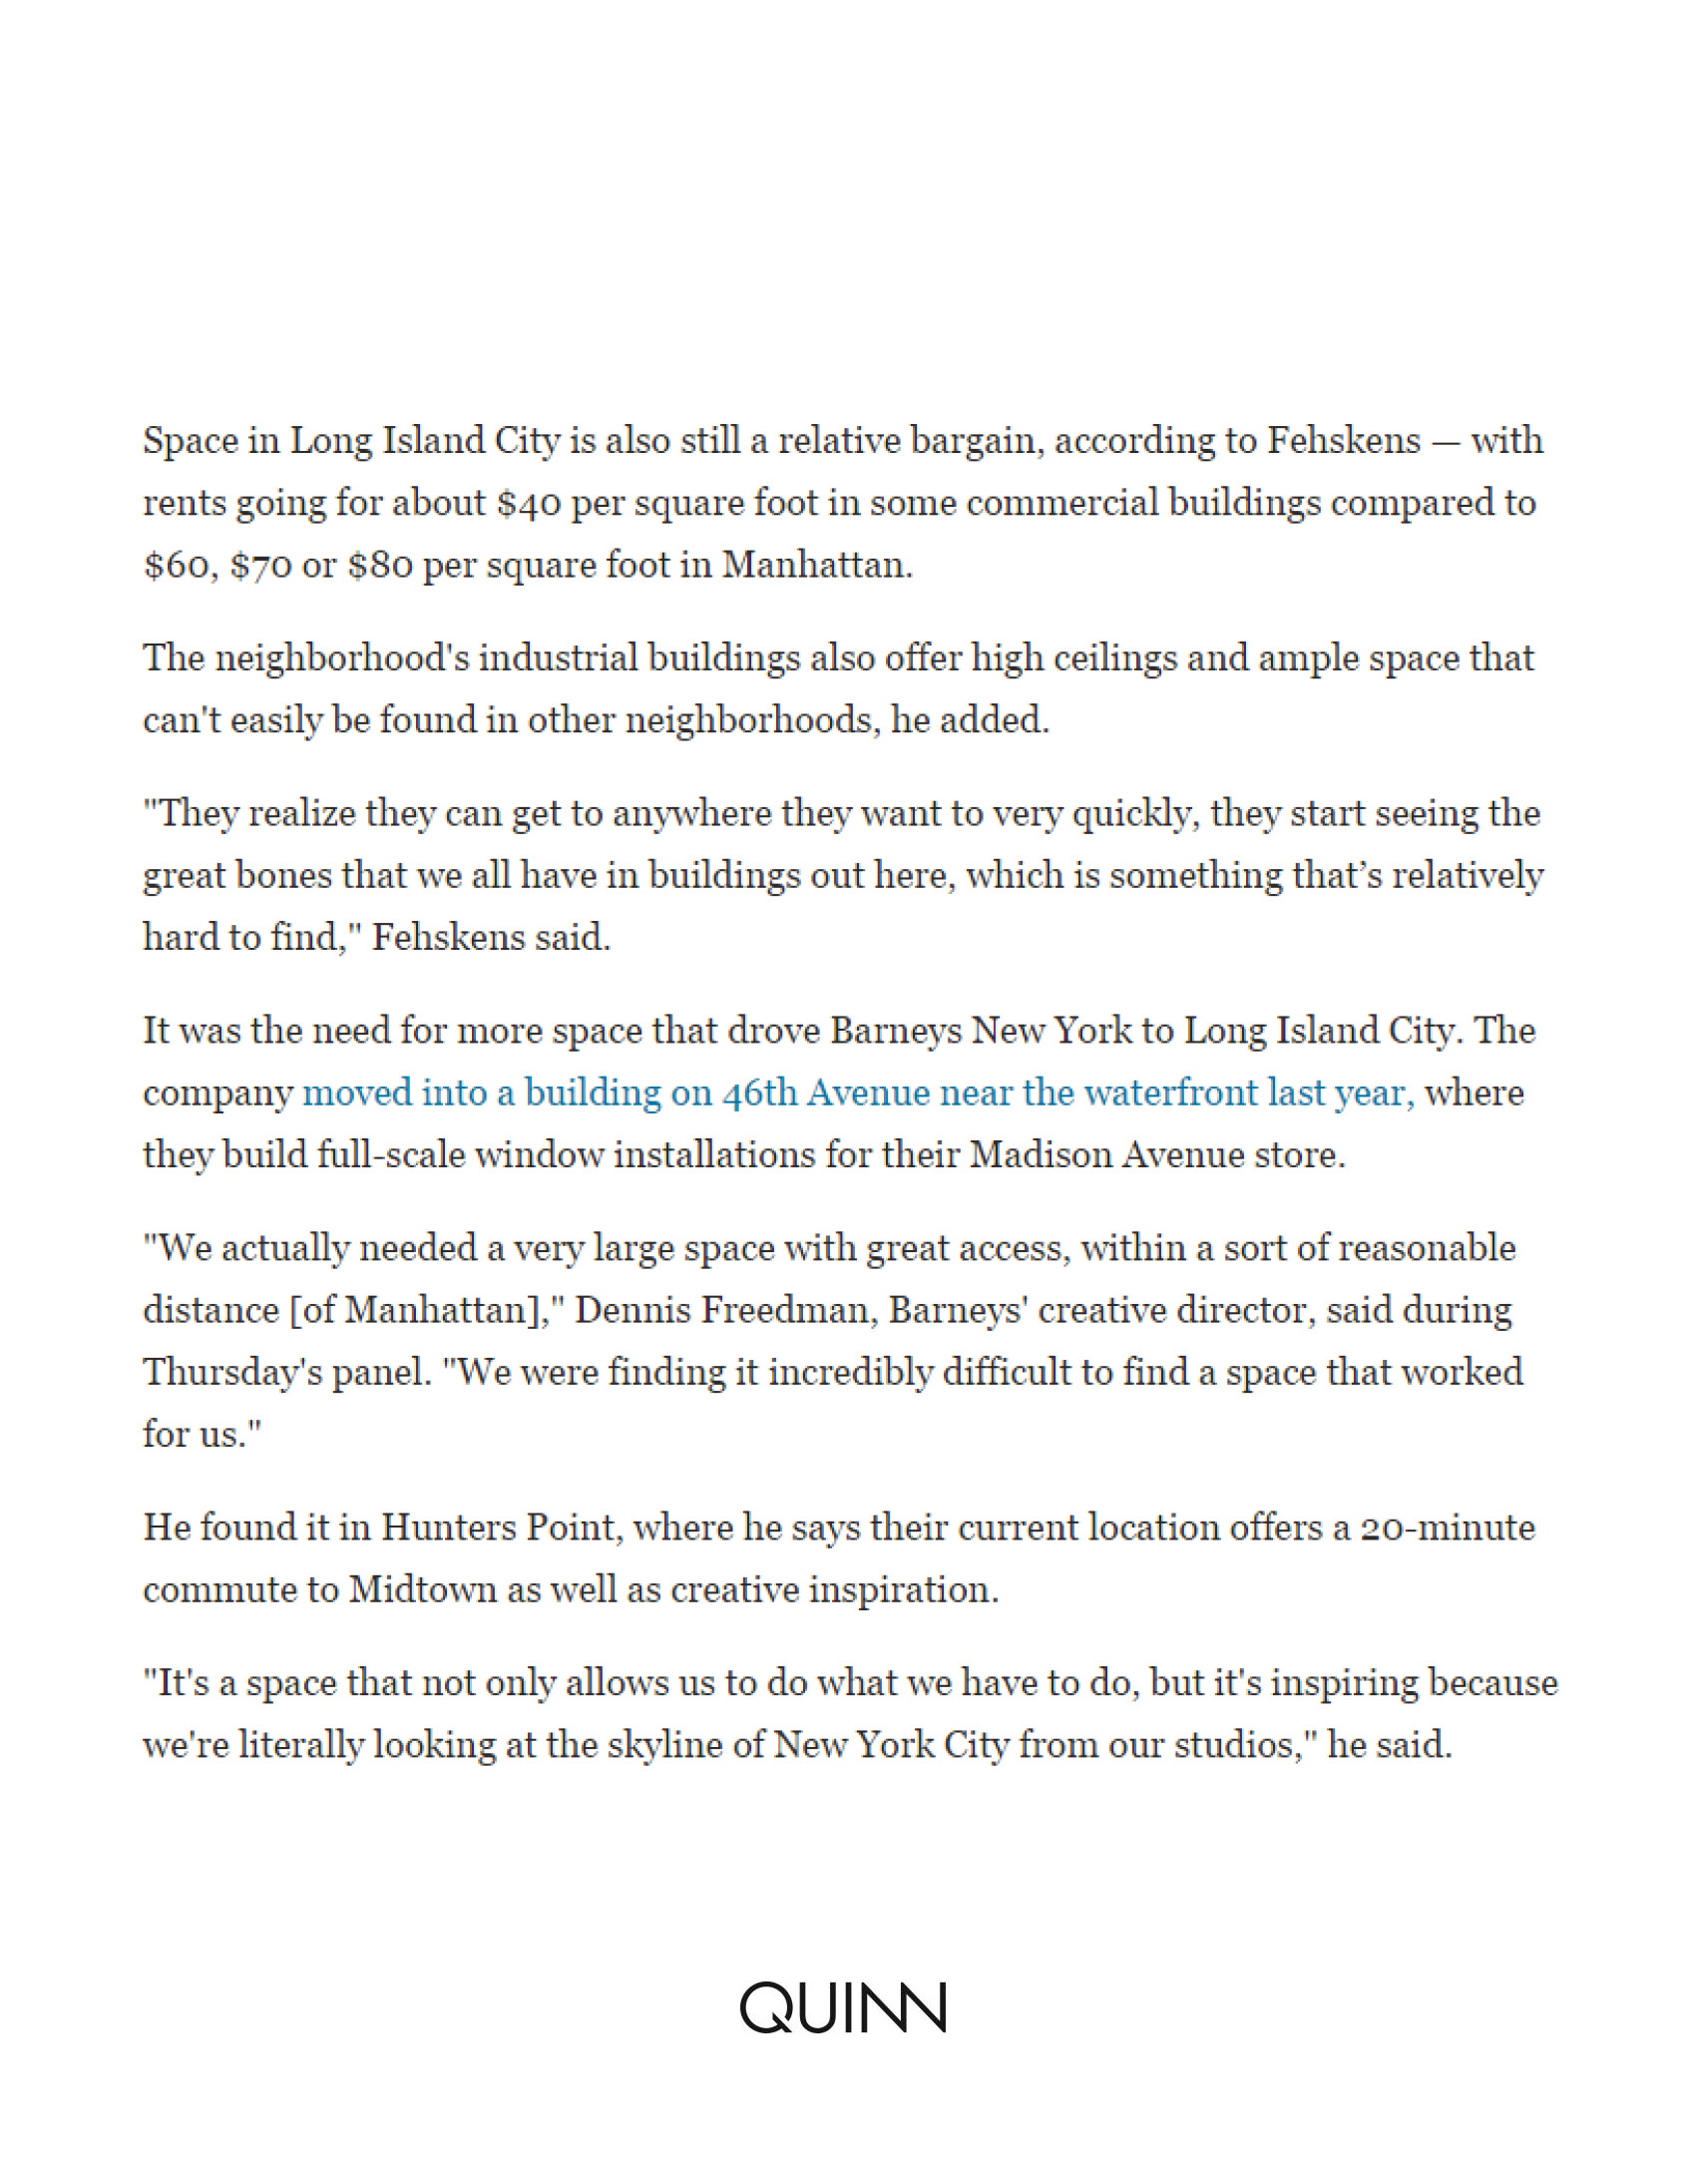 dna info - Long Island City Becoming the New Fashion District, Experts S... (2)_Page_3